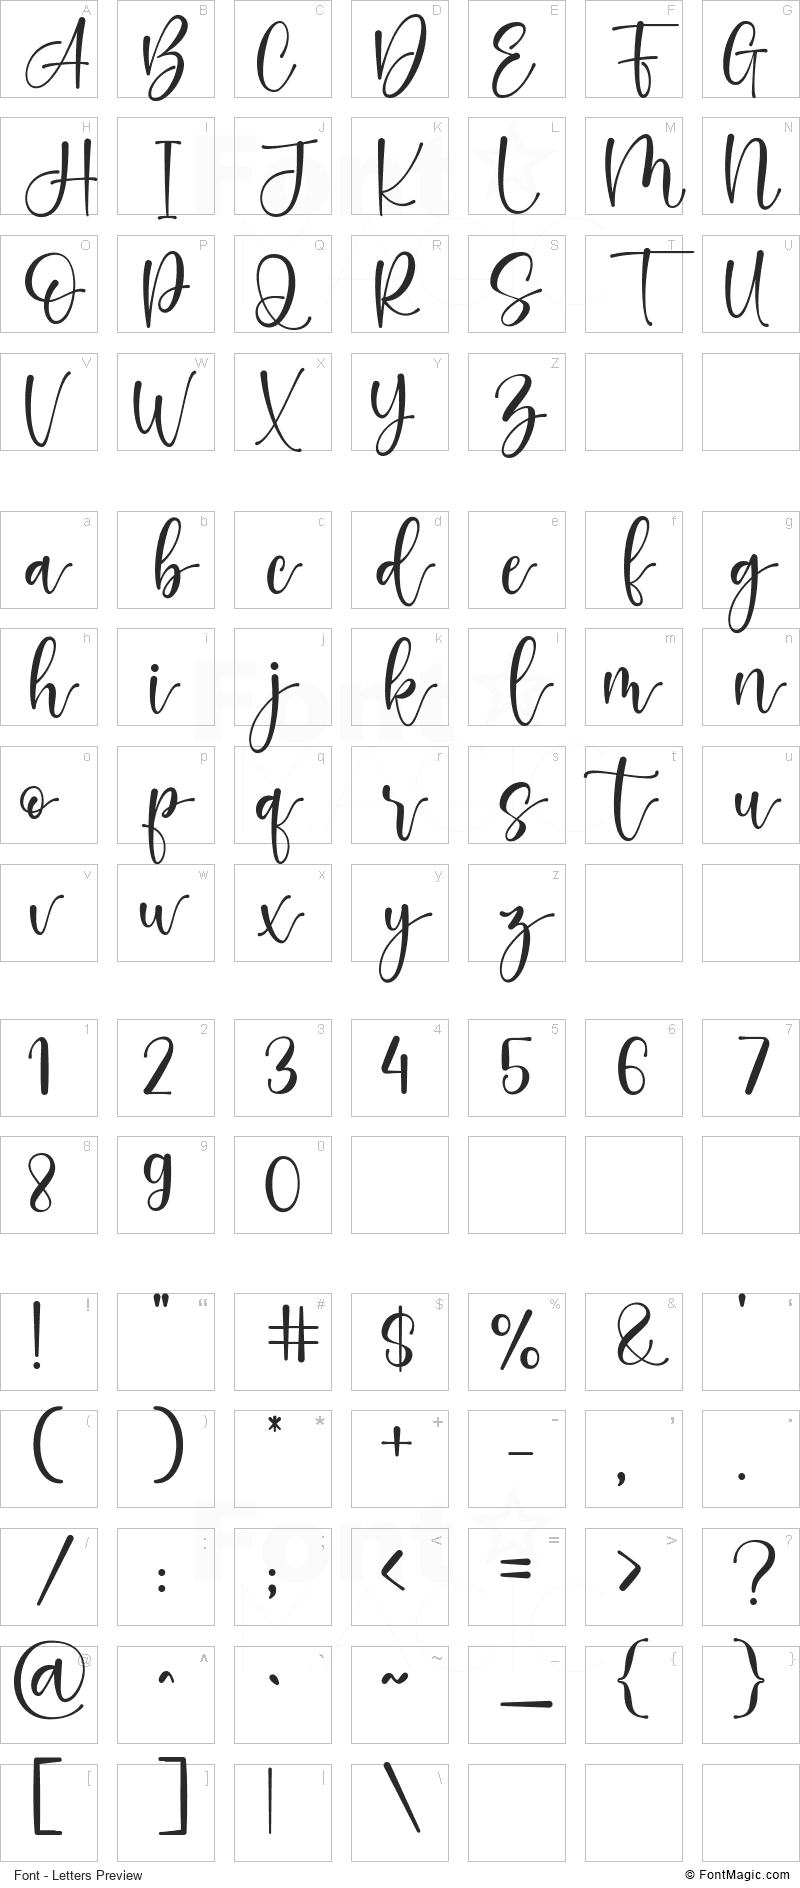 The Glowing Black Queen Font - All Latters Preview Chart